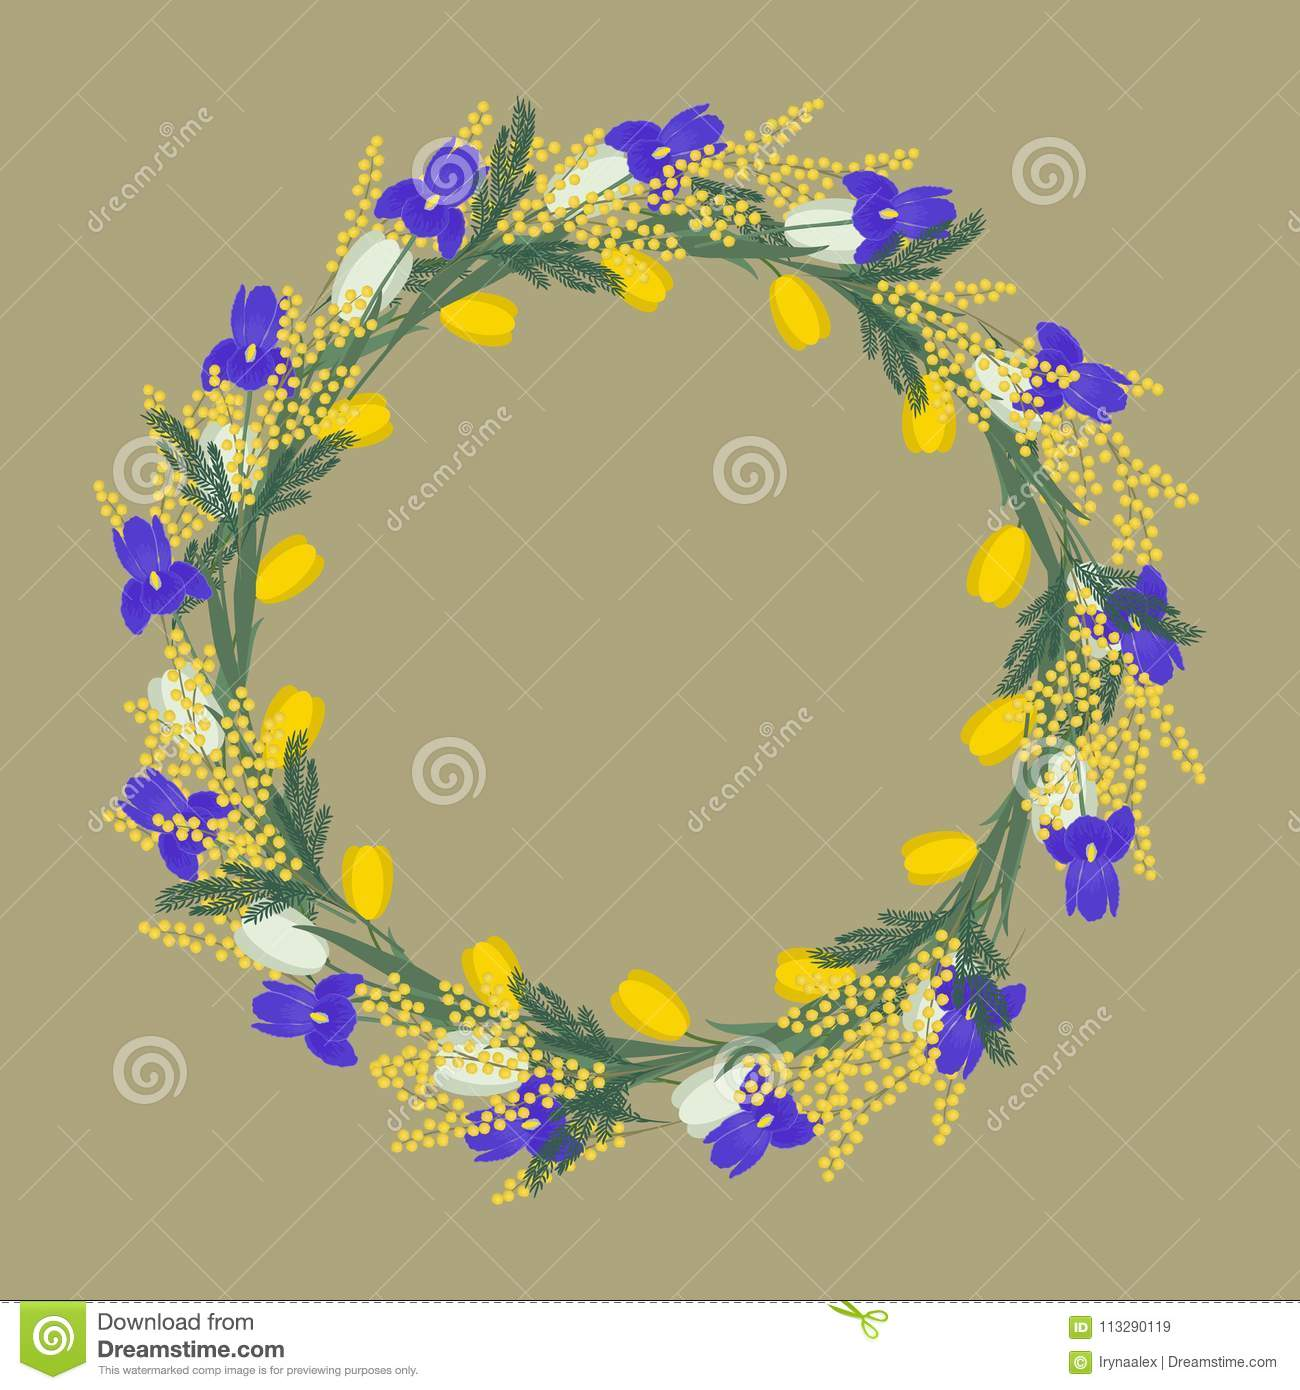 Floral round frame from spring flowers yellow and white flowers of download floral round frame from spring flowers yellow and white flowers of tulips purple mightylinksfo